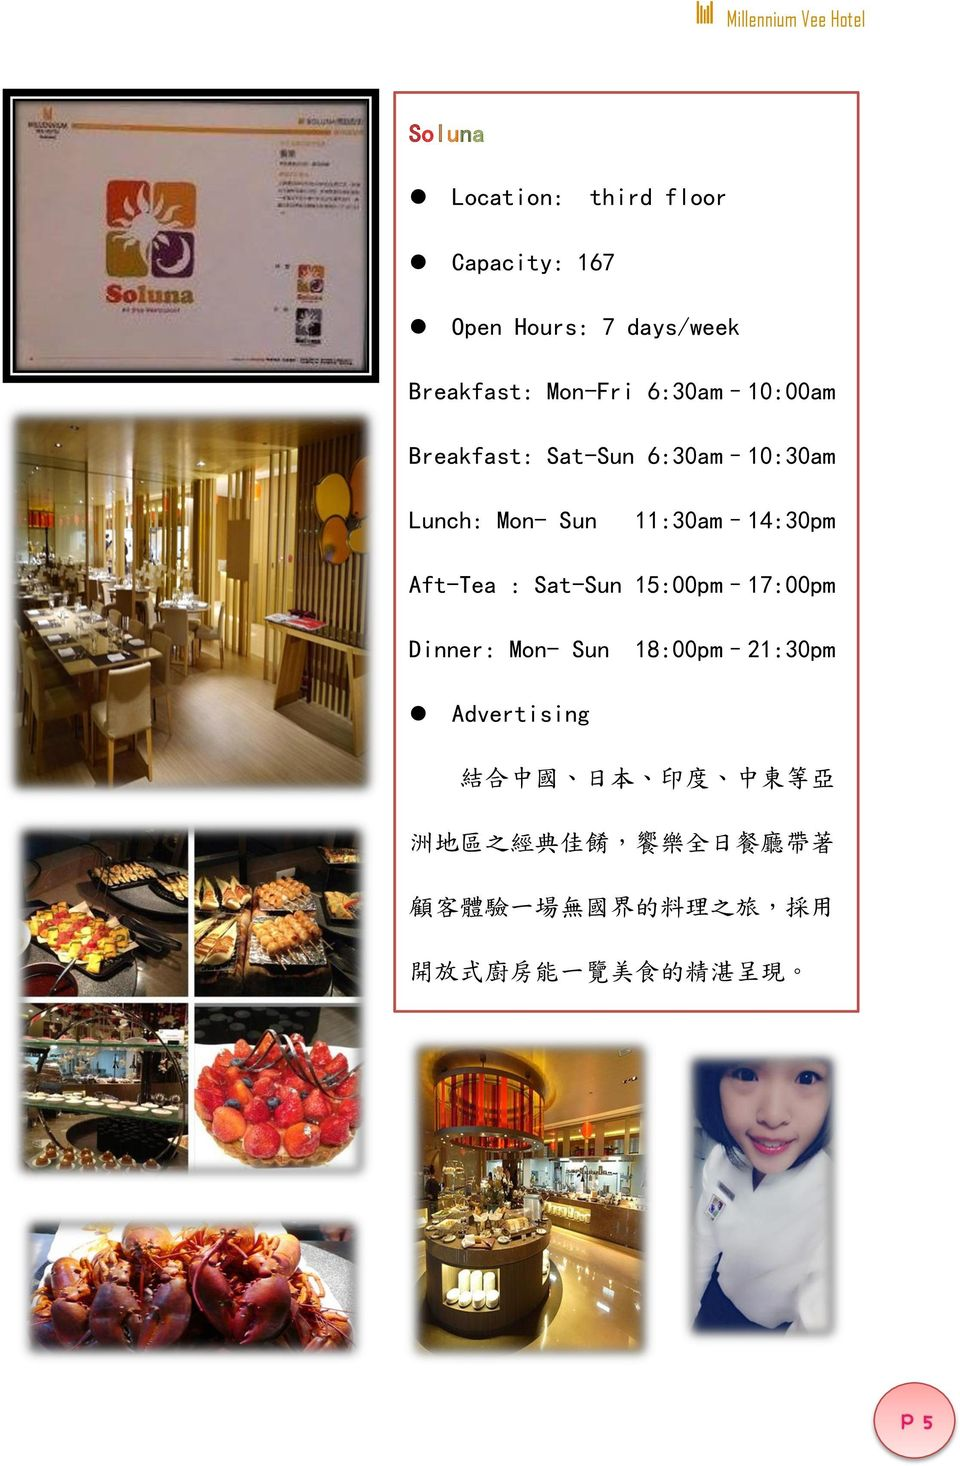 Sat-Sun 15:00pm 17:00pm Dinner: Mon- Sun 18:00pm 21:30pm Advertising 結 合 中 國 日 本 印 度 中 東 等